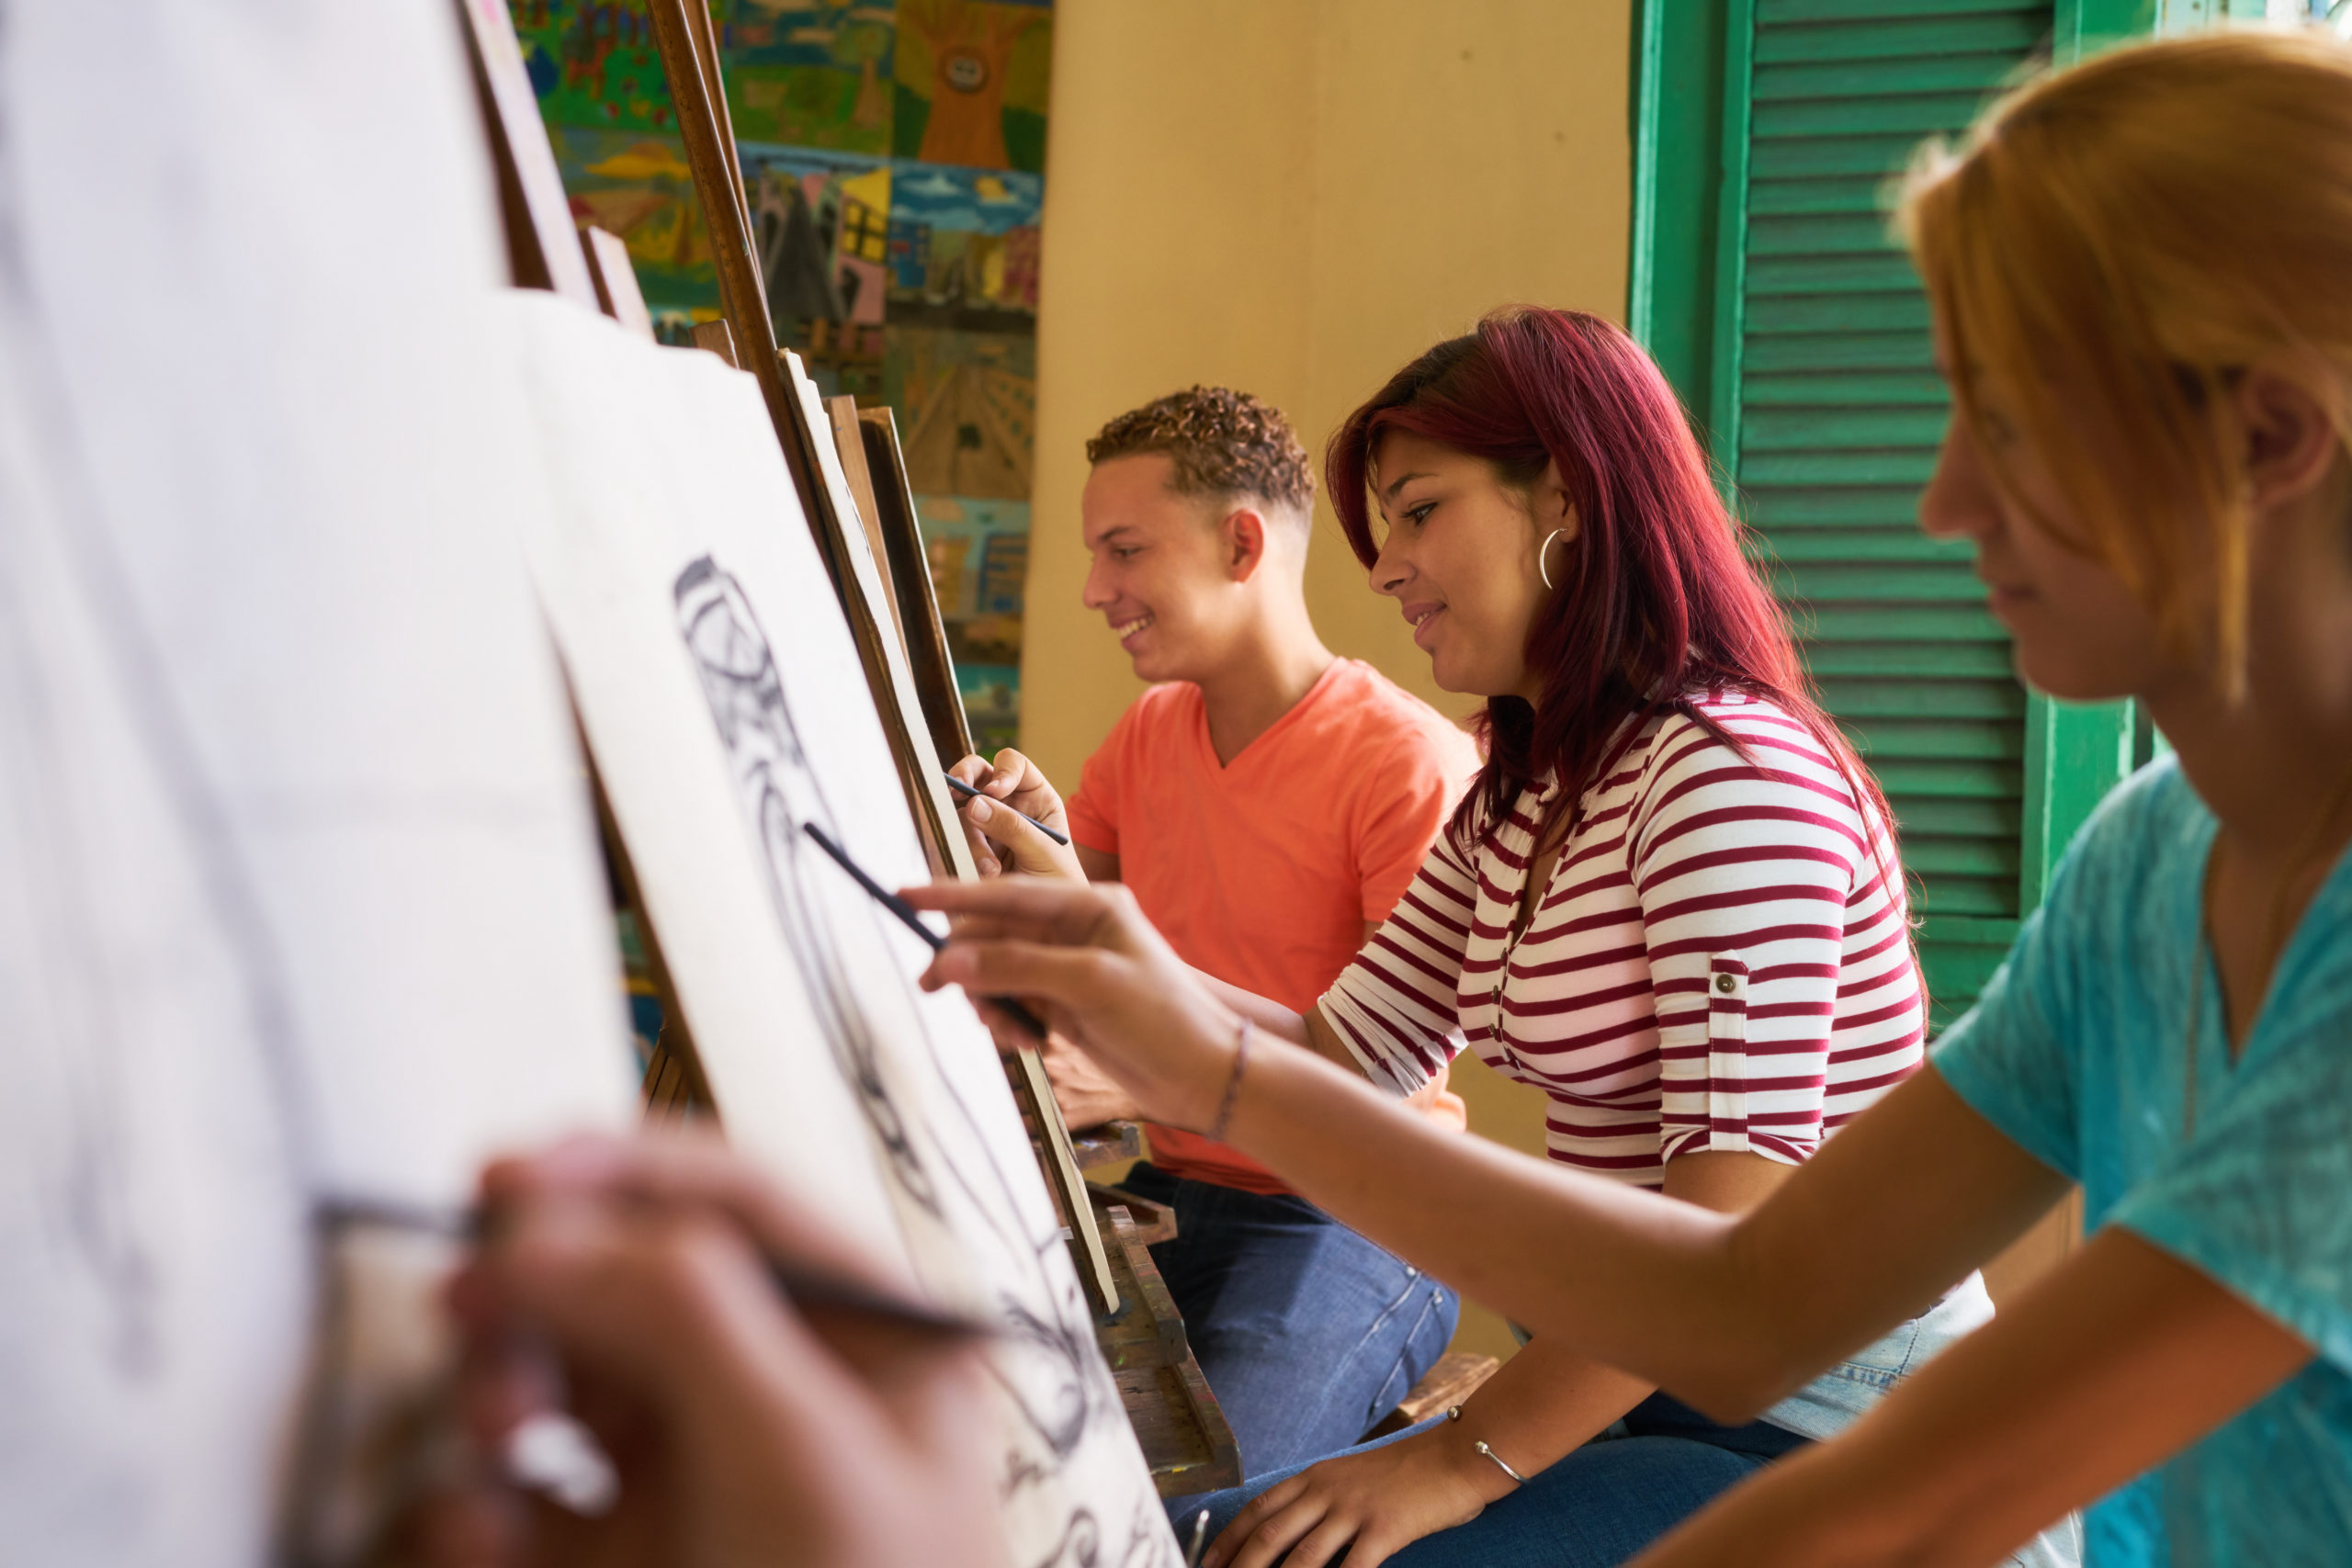 Three art students drawing on easels